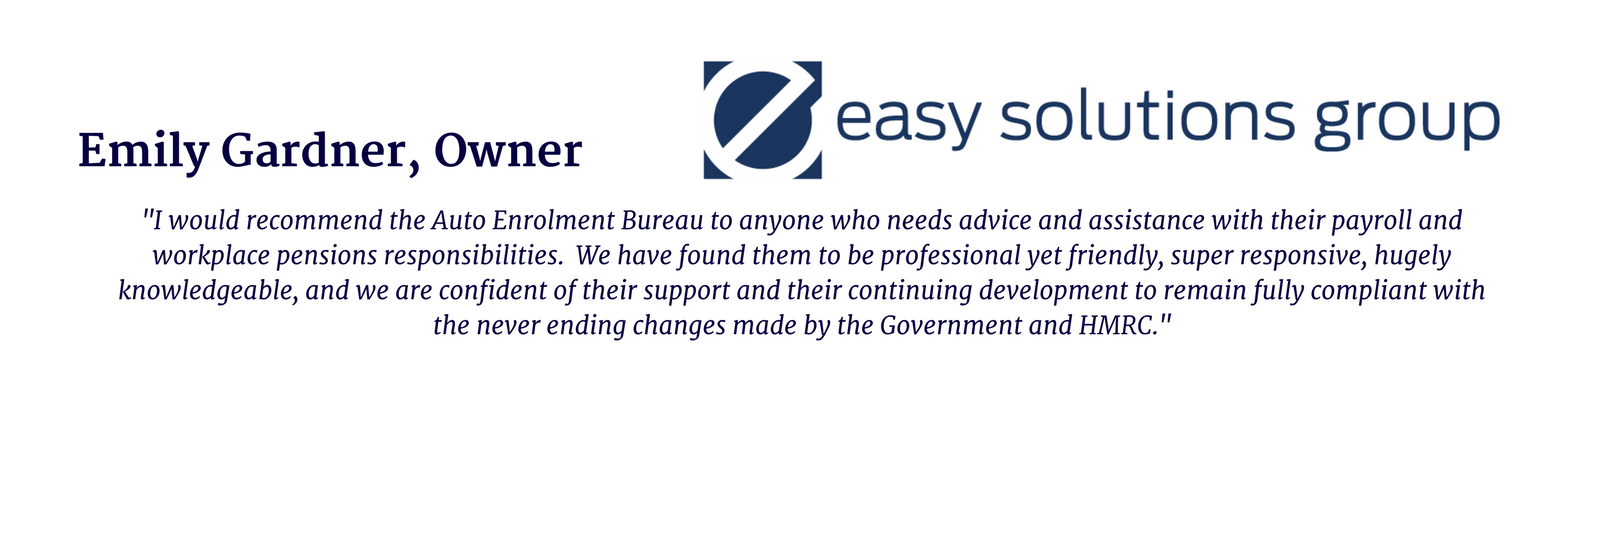 Emily Gardner, Owner, Easy Solutions Group